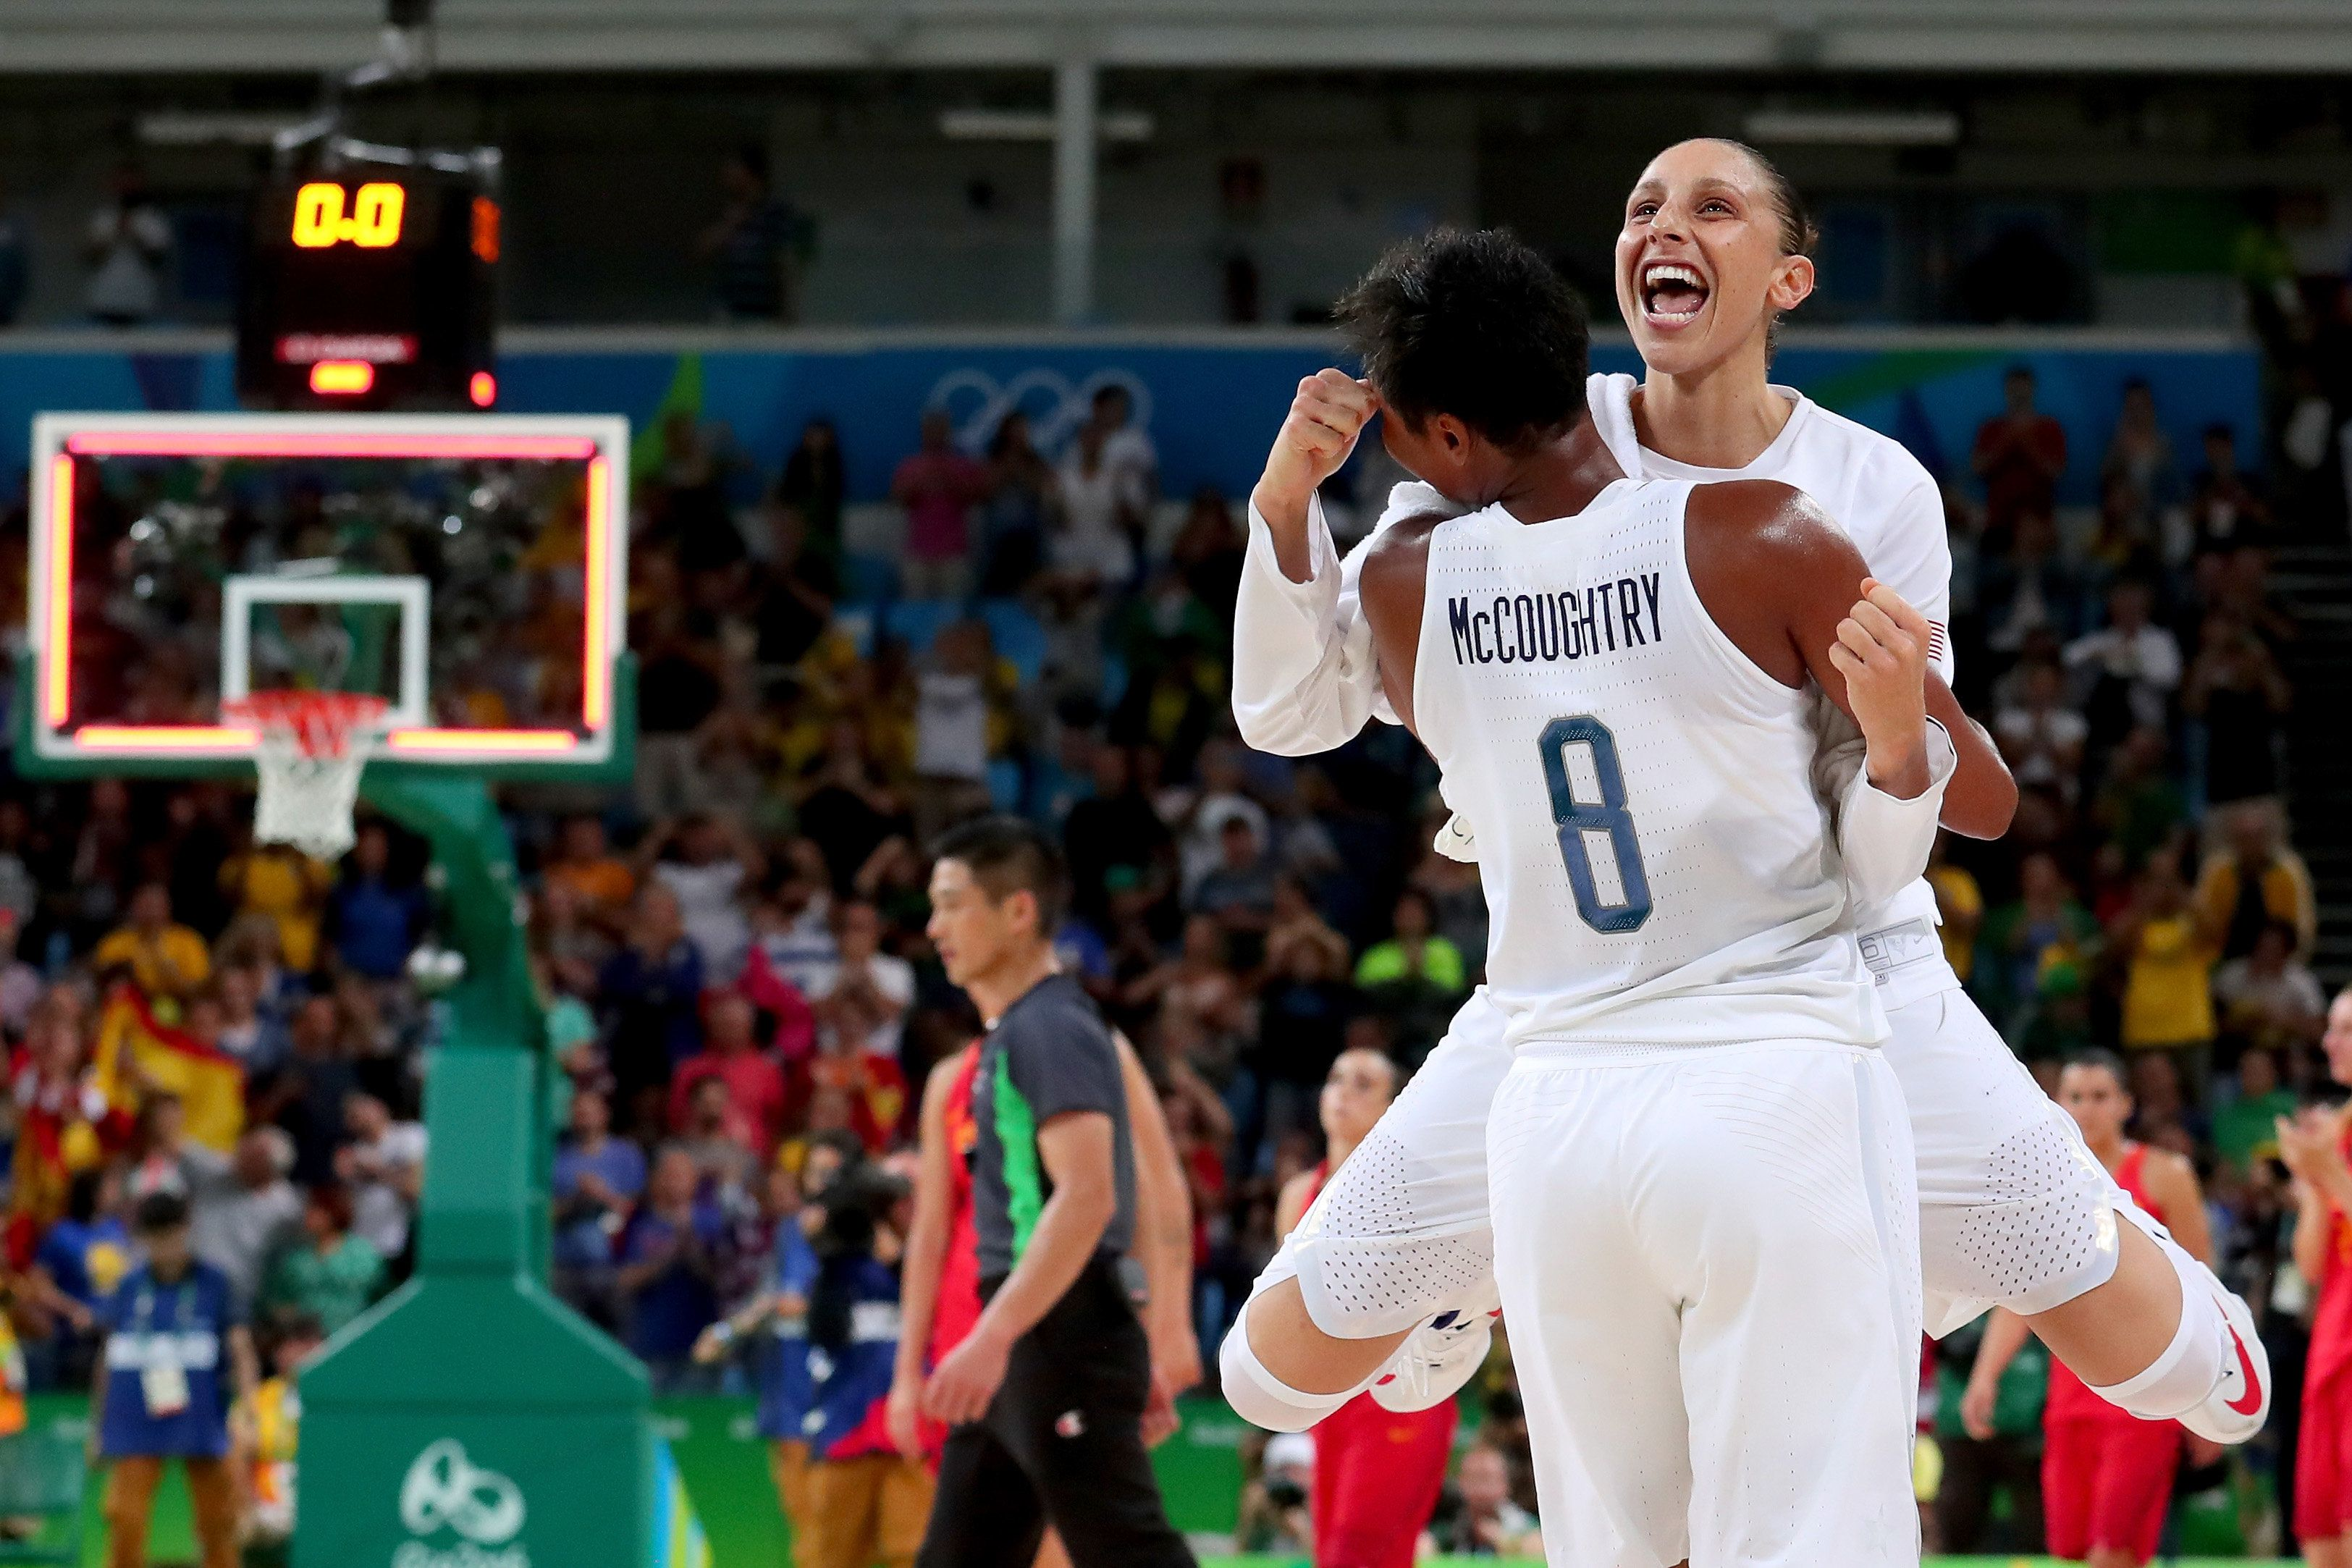 Angel Mccoughtry and Diana Taurasi celebrate after winning the Women's Gold Medal Game in Rio de Janeiro, Brazil.